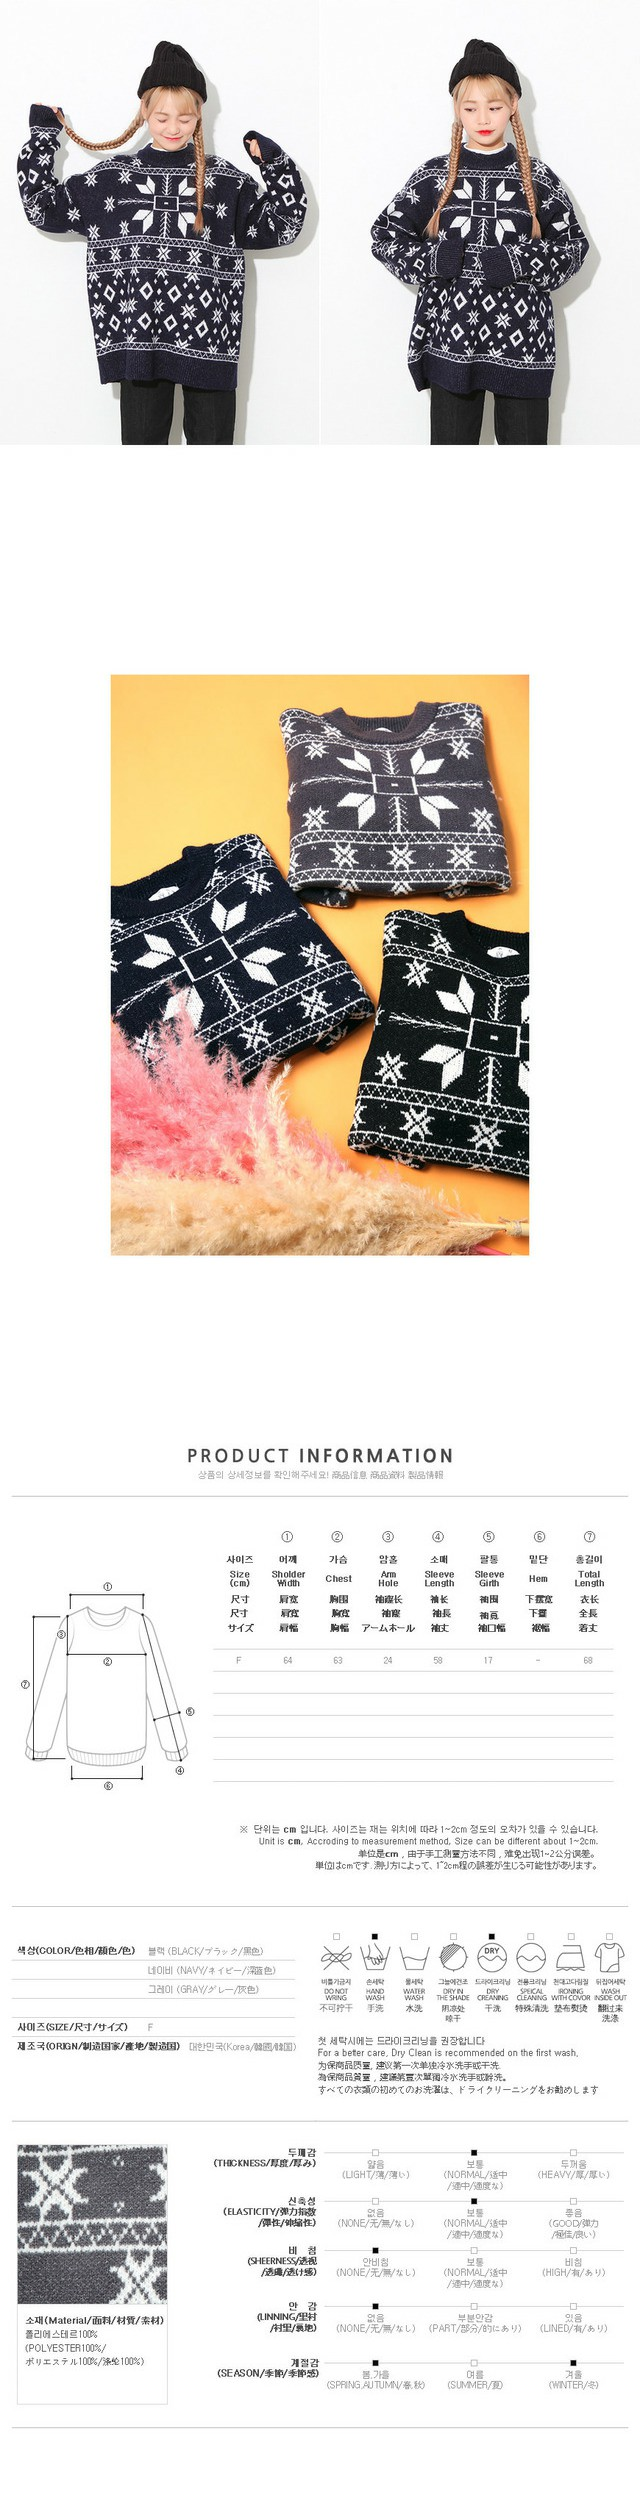 Riveted snow flake ice water ♥ unisex ♥